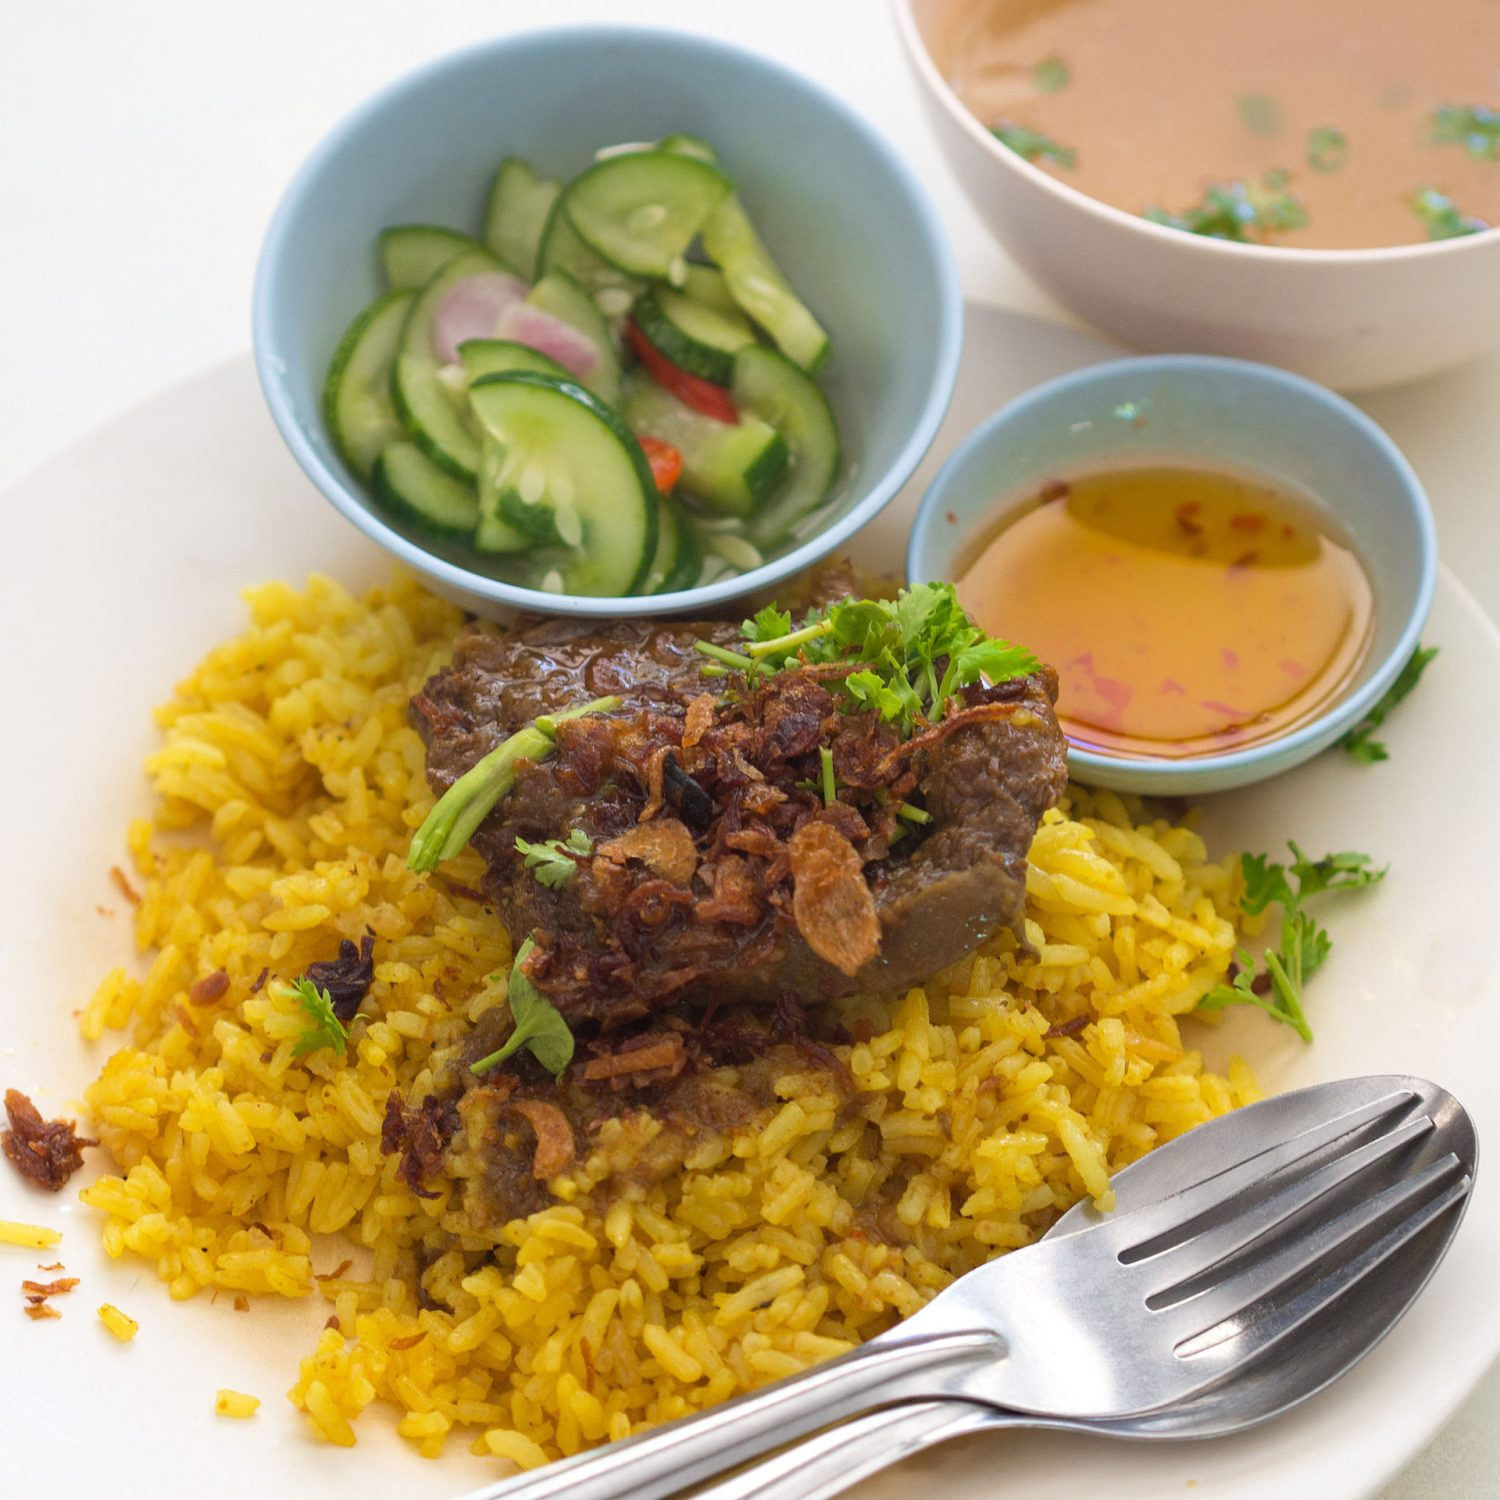 Thai Beef Biryani like this one is called Khao Mok Nuea. Have you tried one of these?